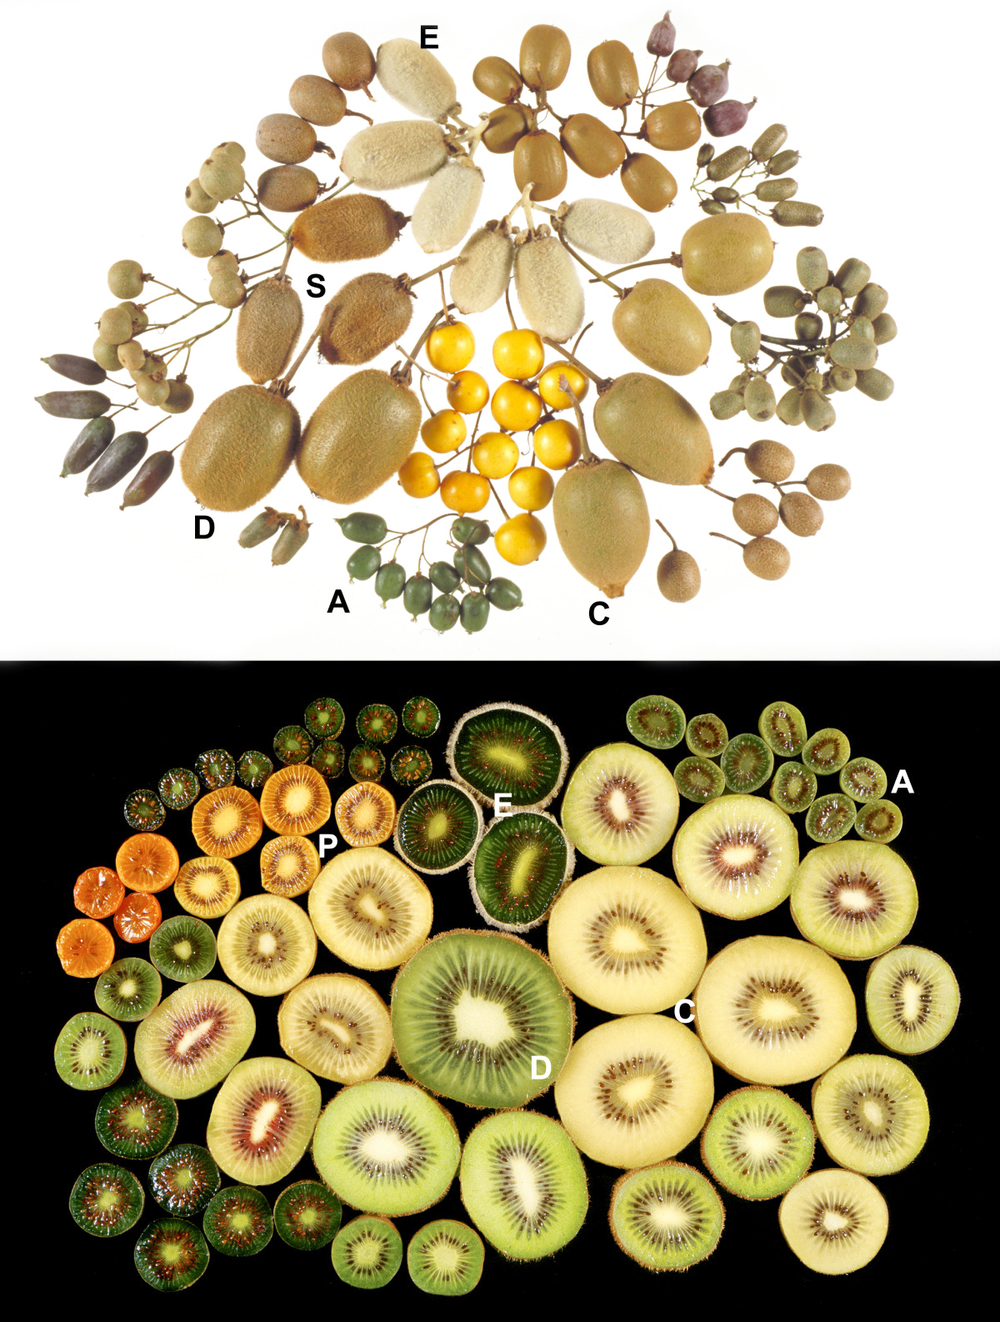 actinidia_fruits2.jpg